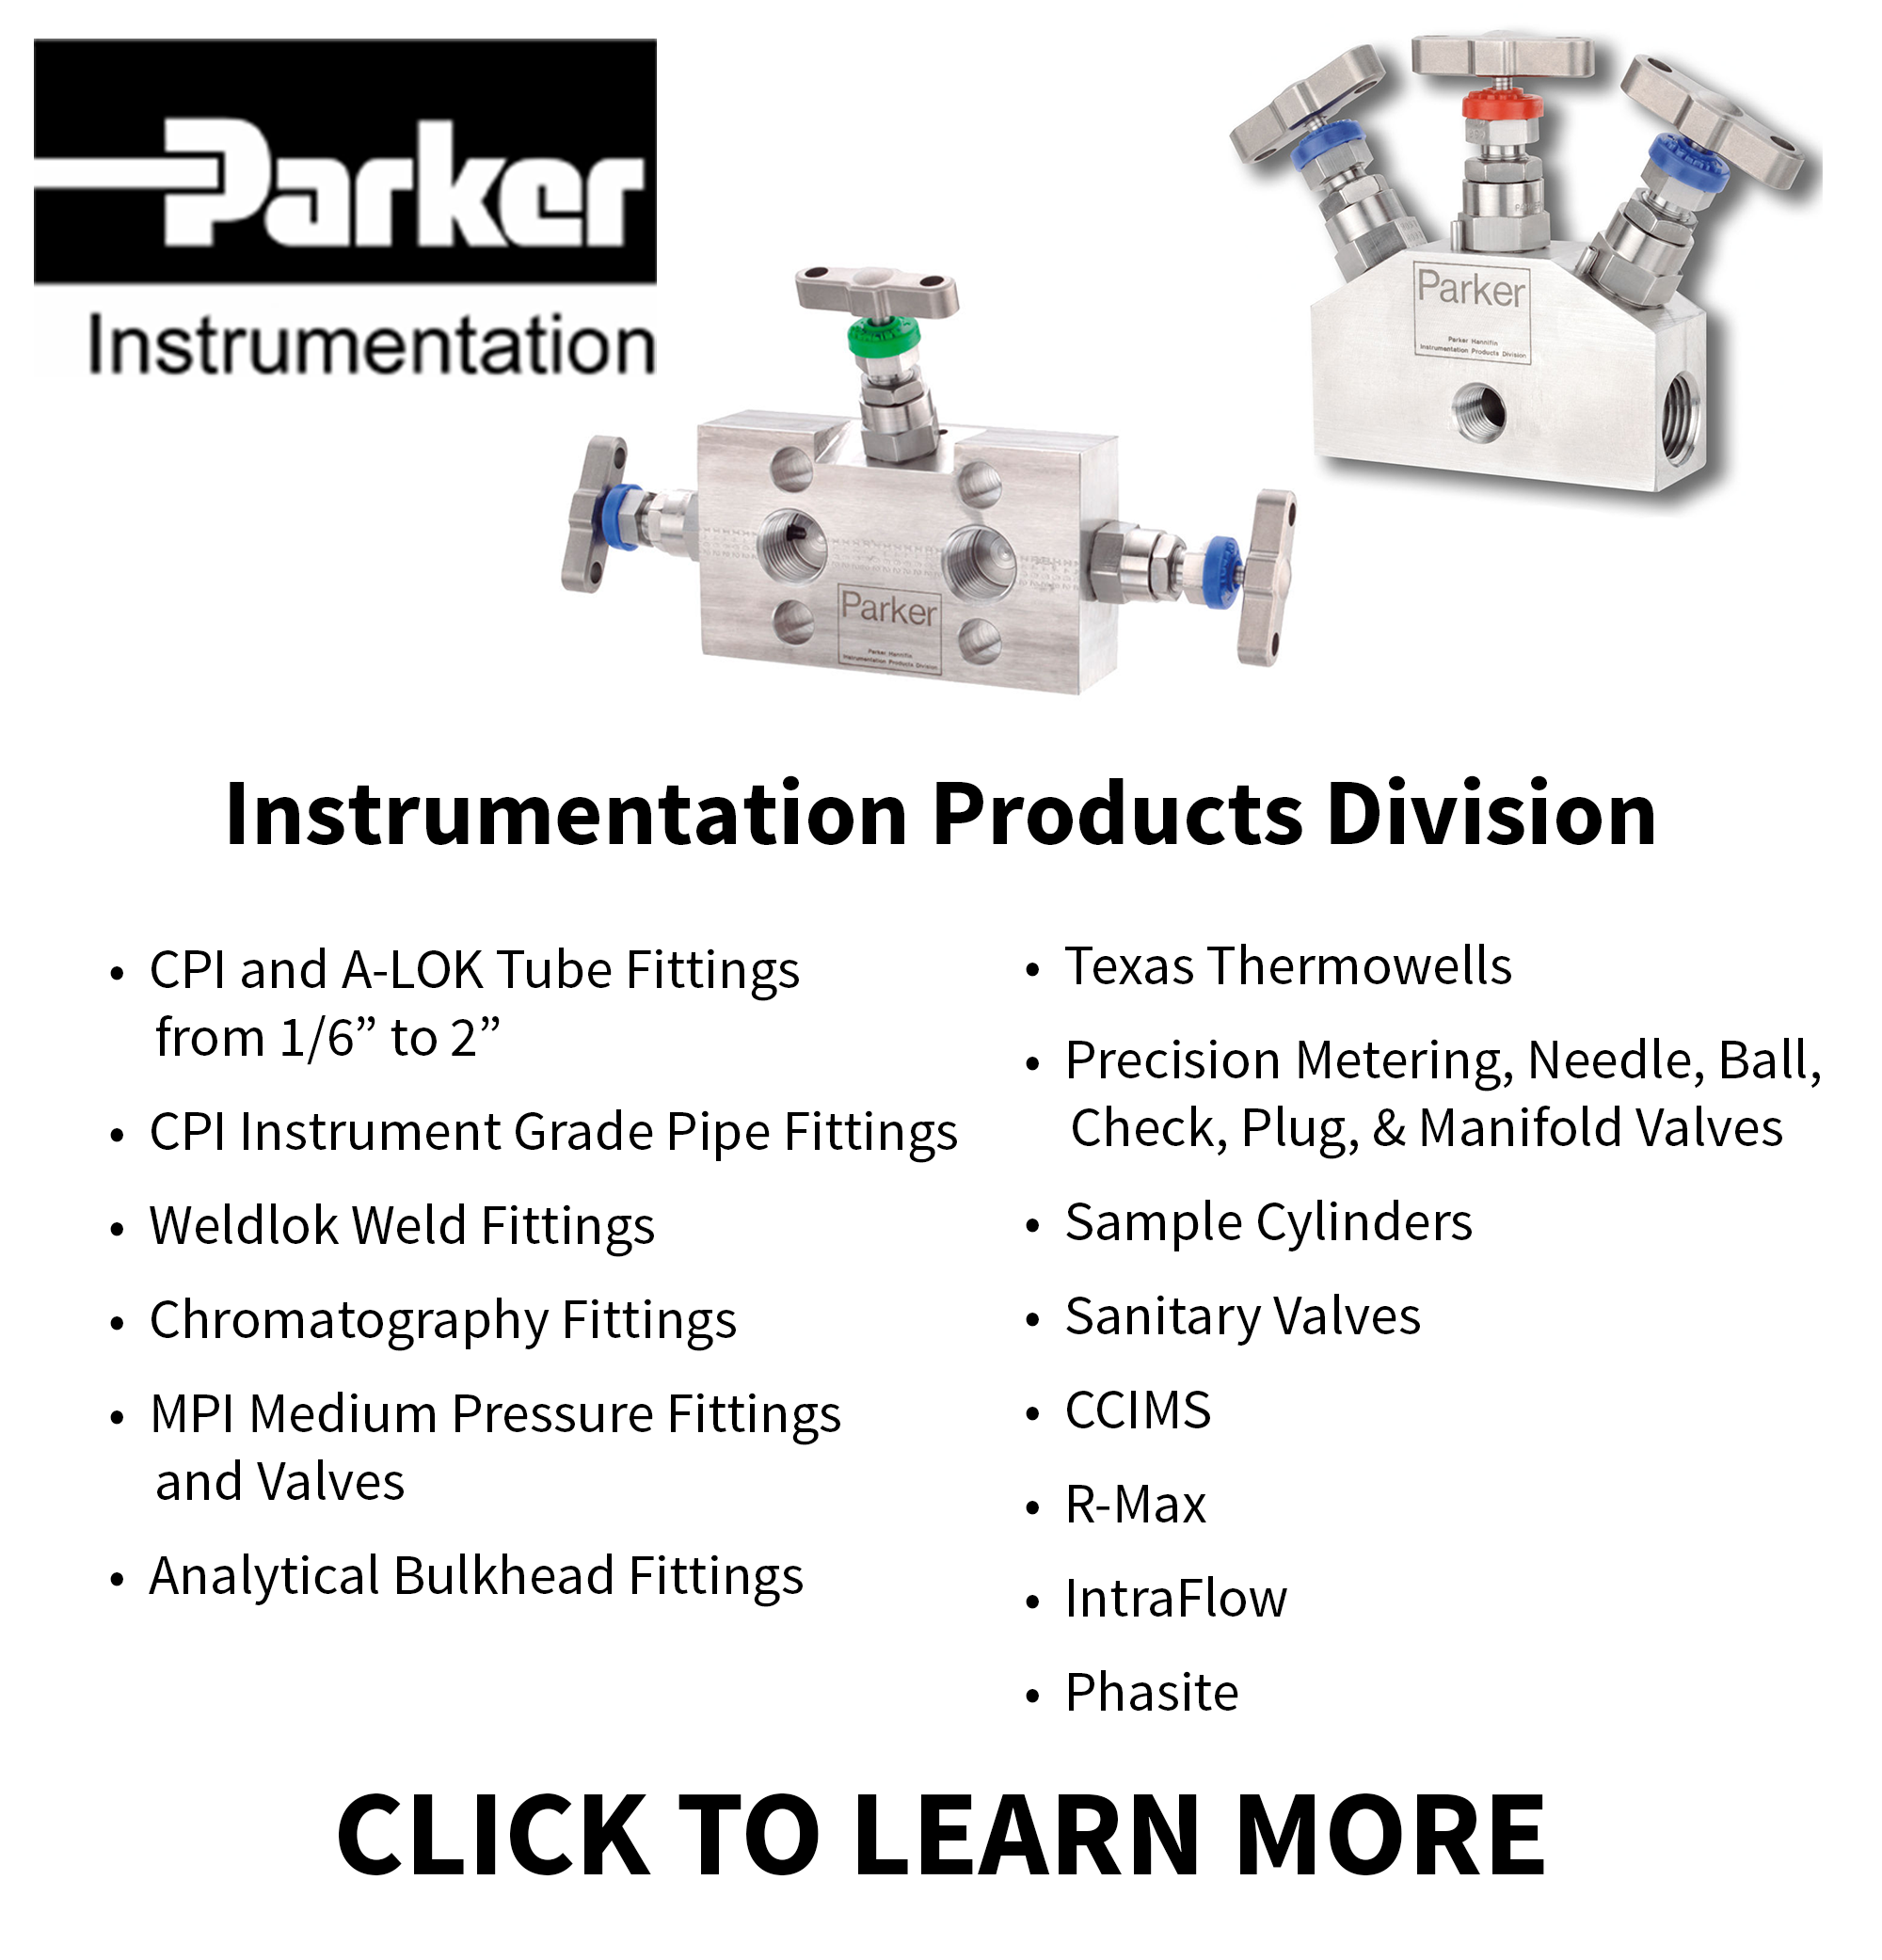 Ohio Valley Industrial Services- Parker Instrumentation Products Division